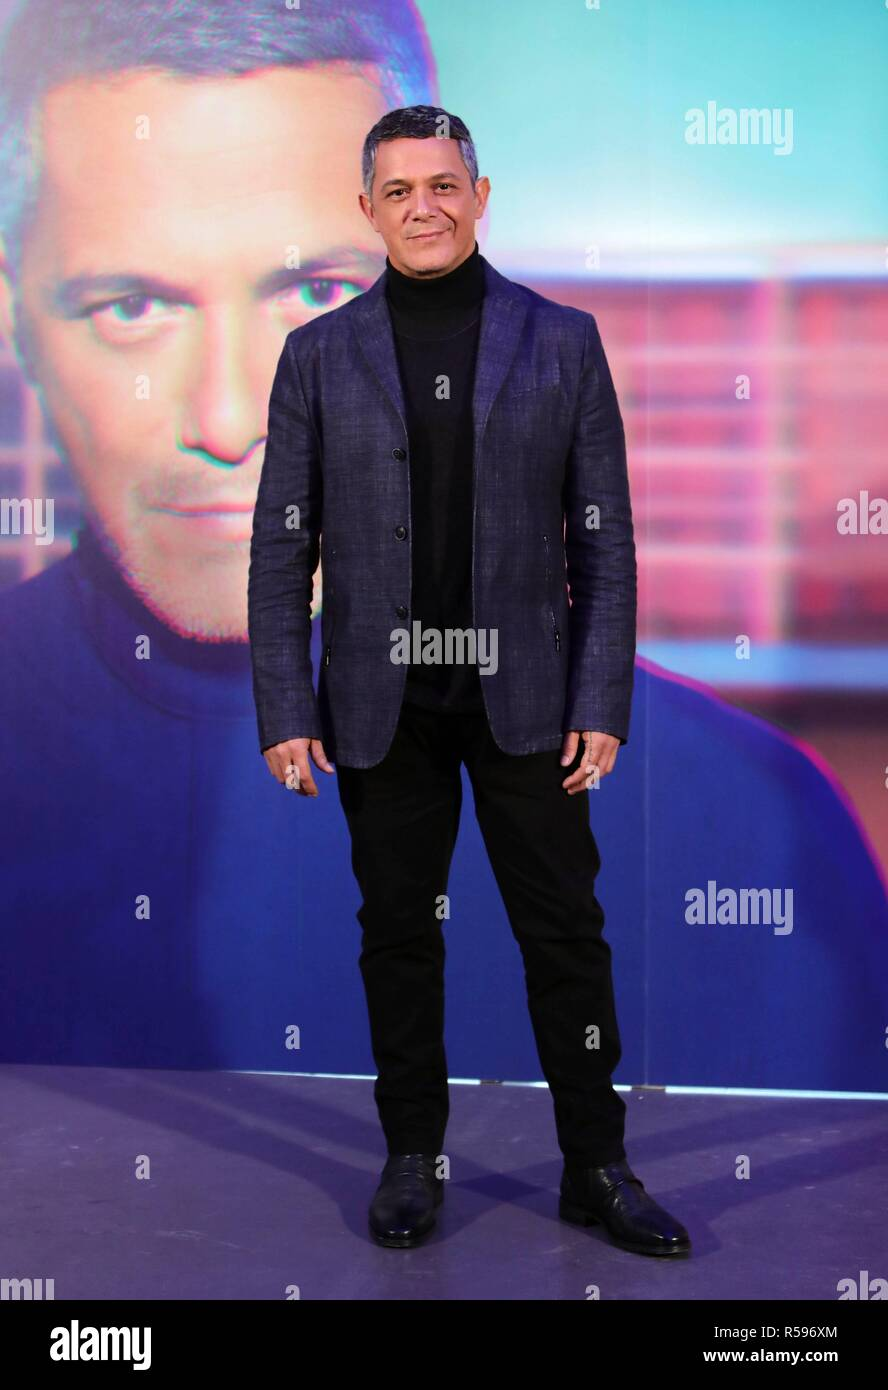 "Singer Alejandro Sanz during presentation of his single "" No tengo Nada "" in Madrid on Friday , 30 November 2018 Stock Photo"